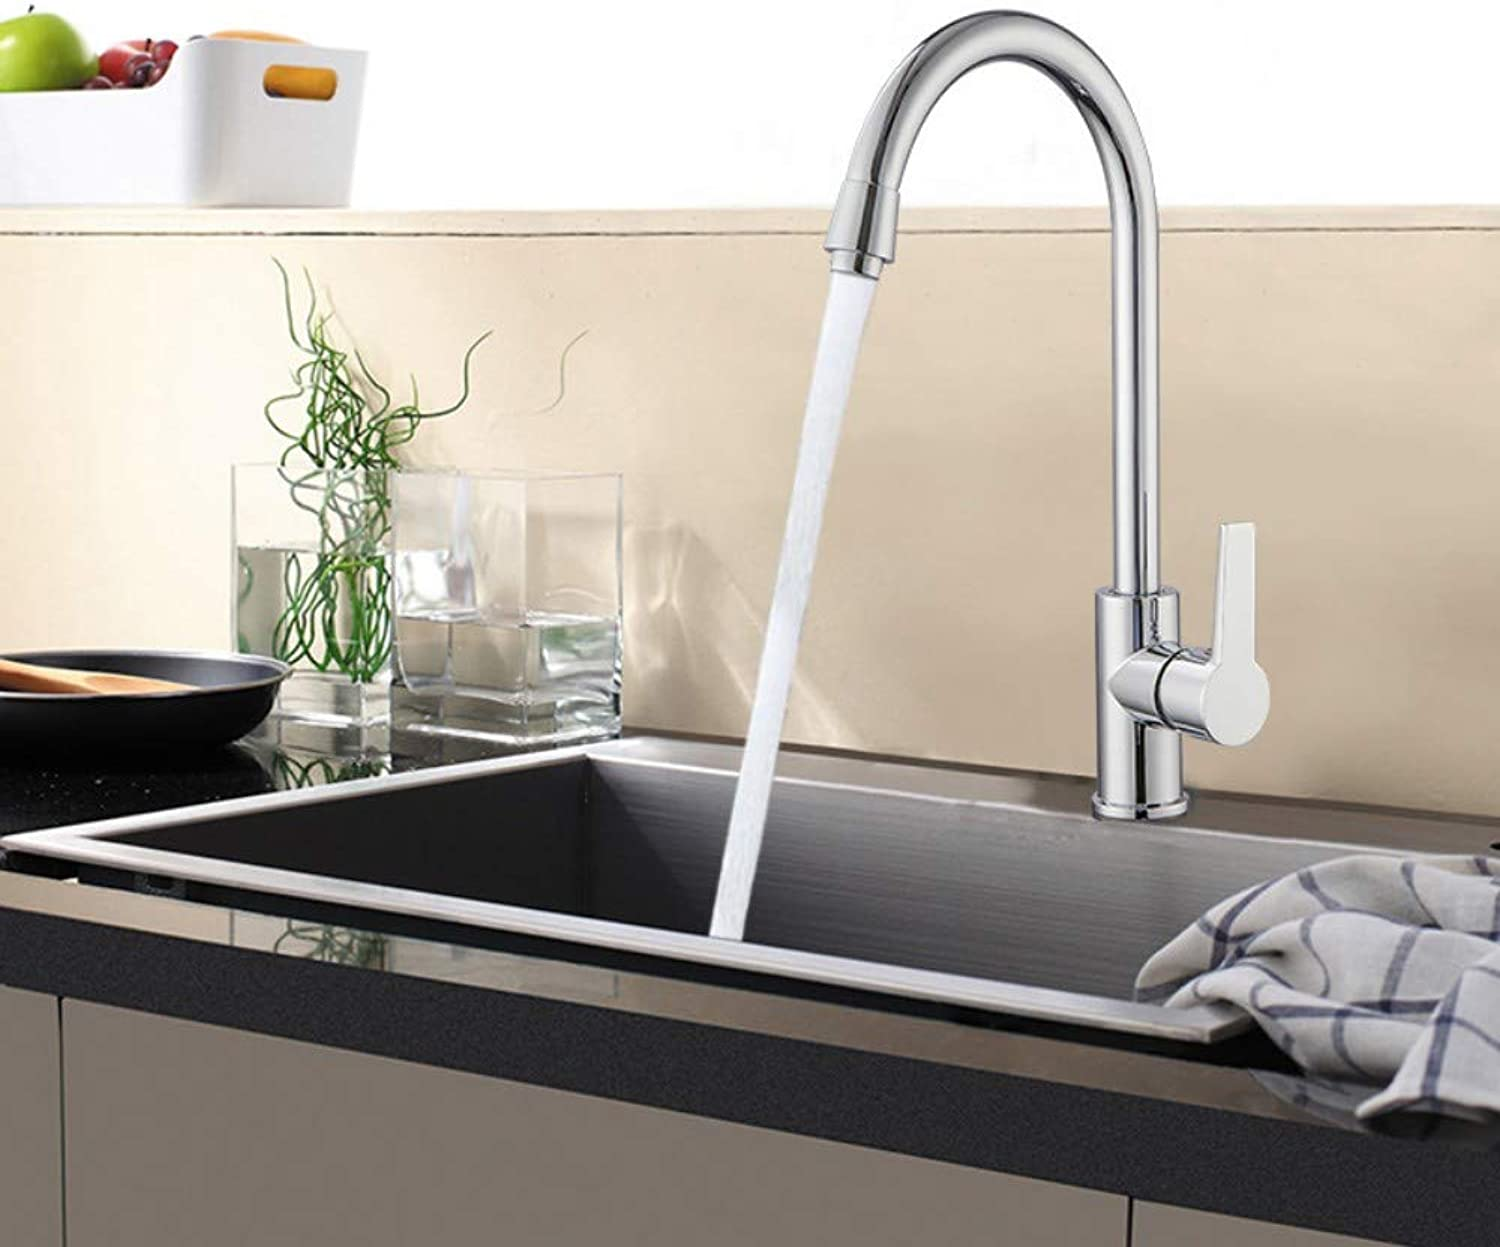 Copper Core Three-Way Large Curved Tube Kitchen Sink Hot and Cold Water Mixing Valve Faucet